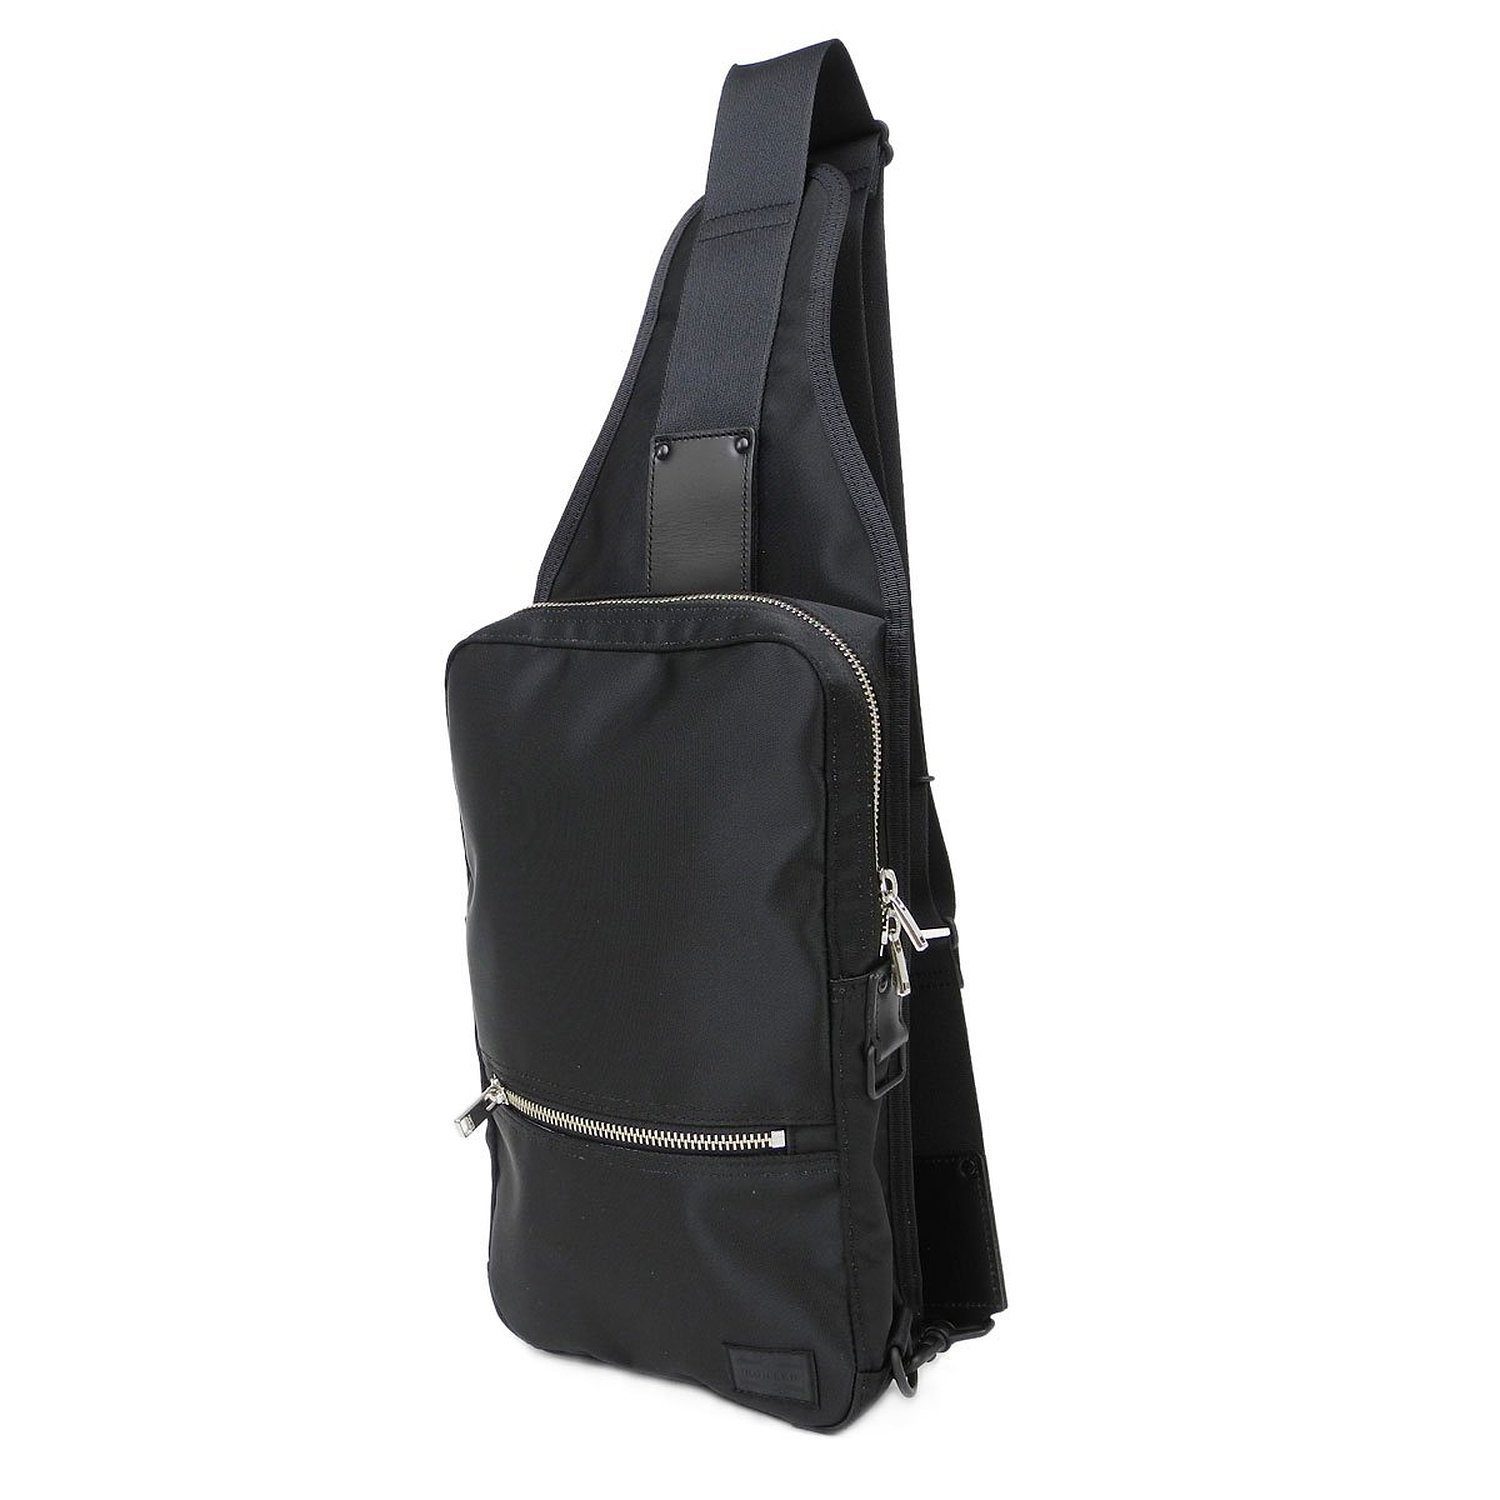 472d229c43 Amazon.com  Yoshida Bag Porter Lift One Shoulder Bag 822-06134 Black from  Japan  Office Products